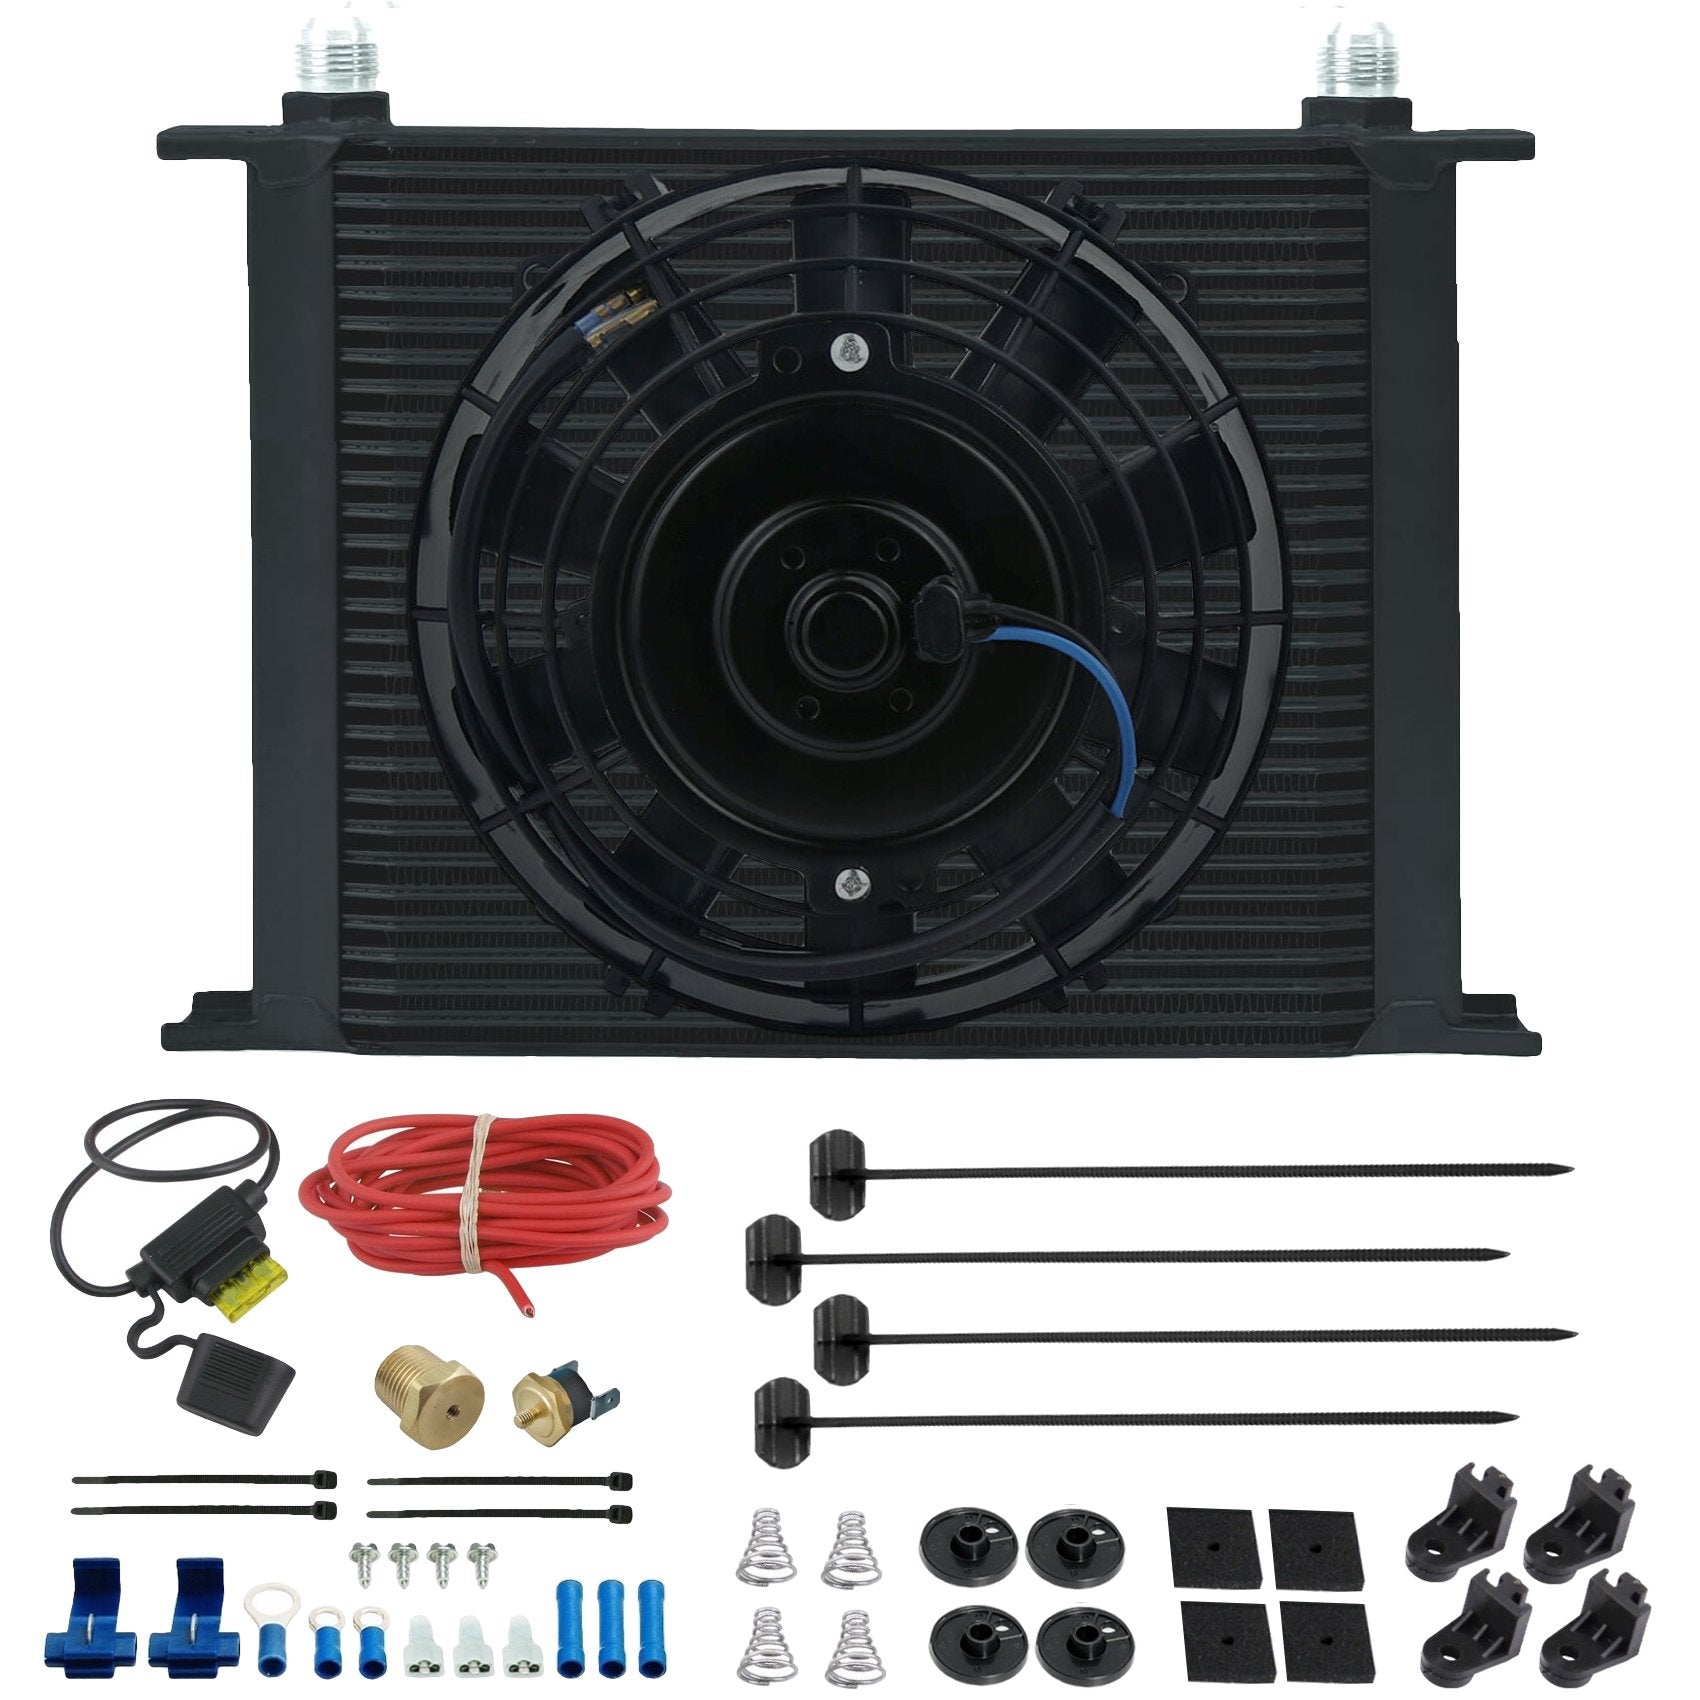 "30 Row Engine Transmission Oil Cooler 8"" Inch Electric Fan Thermostat Temperature Switch In-Line Wire Kit-Oil Cooler-American Volt-10AN-1/8"" NPT-140'F On - 125'F Off-American Volt"